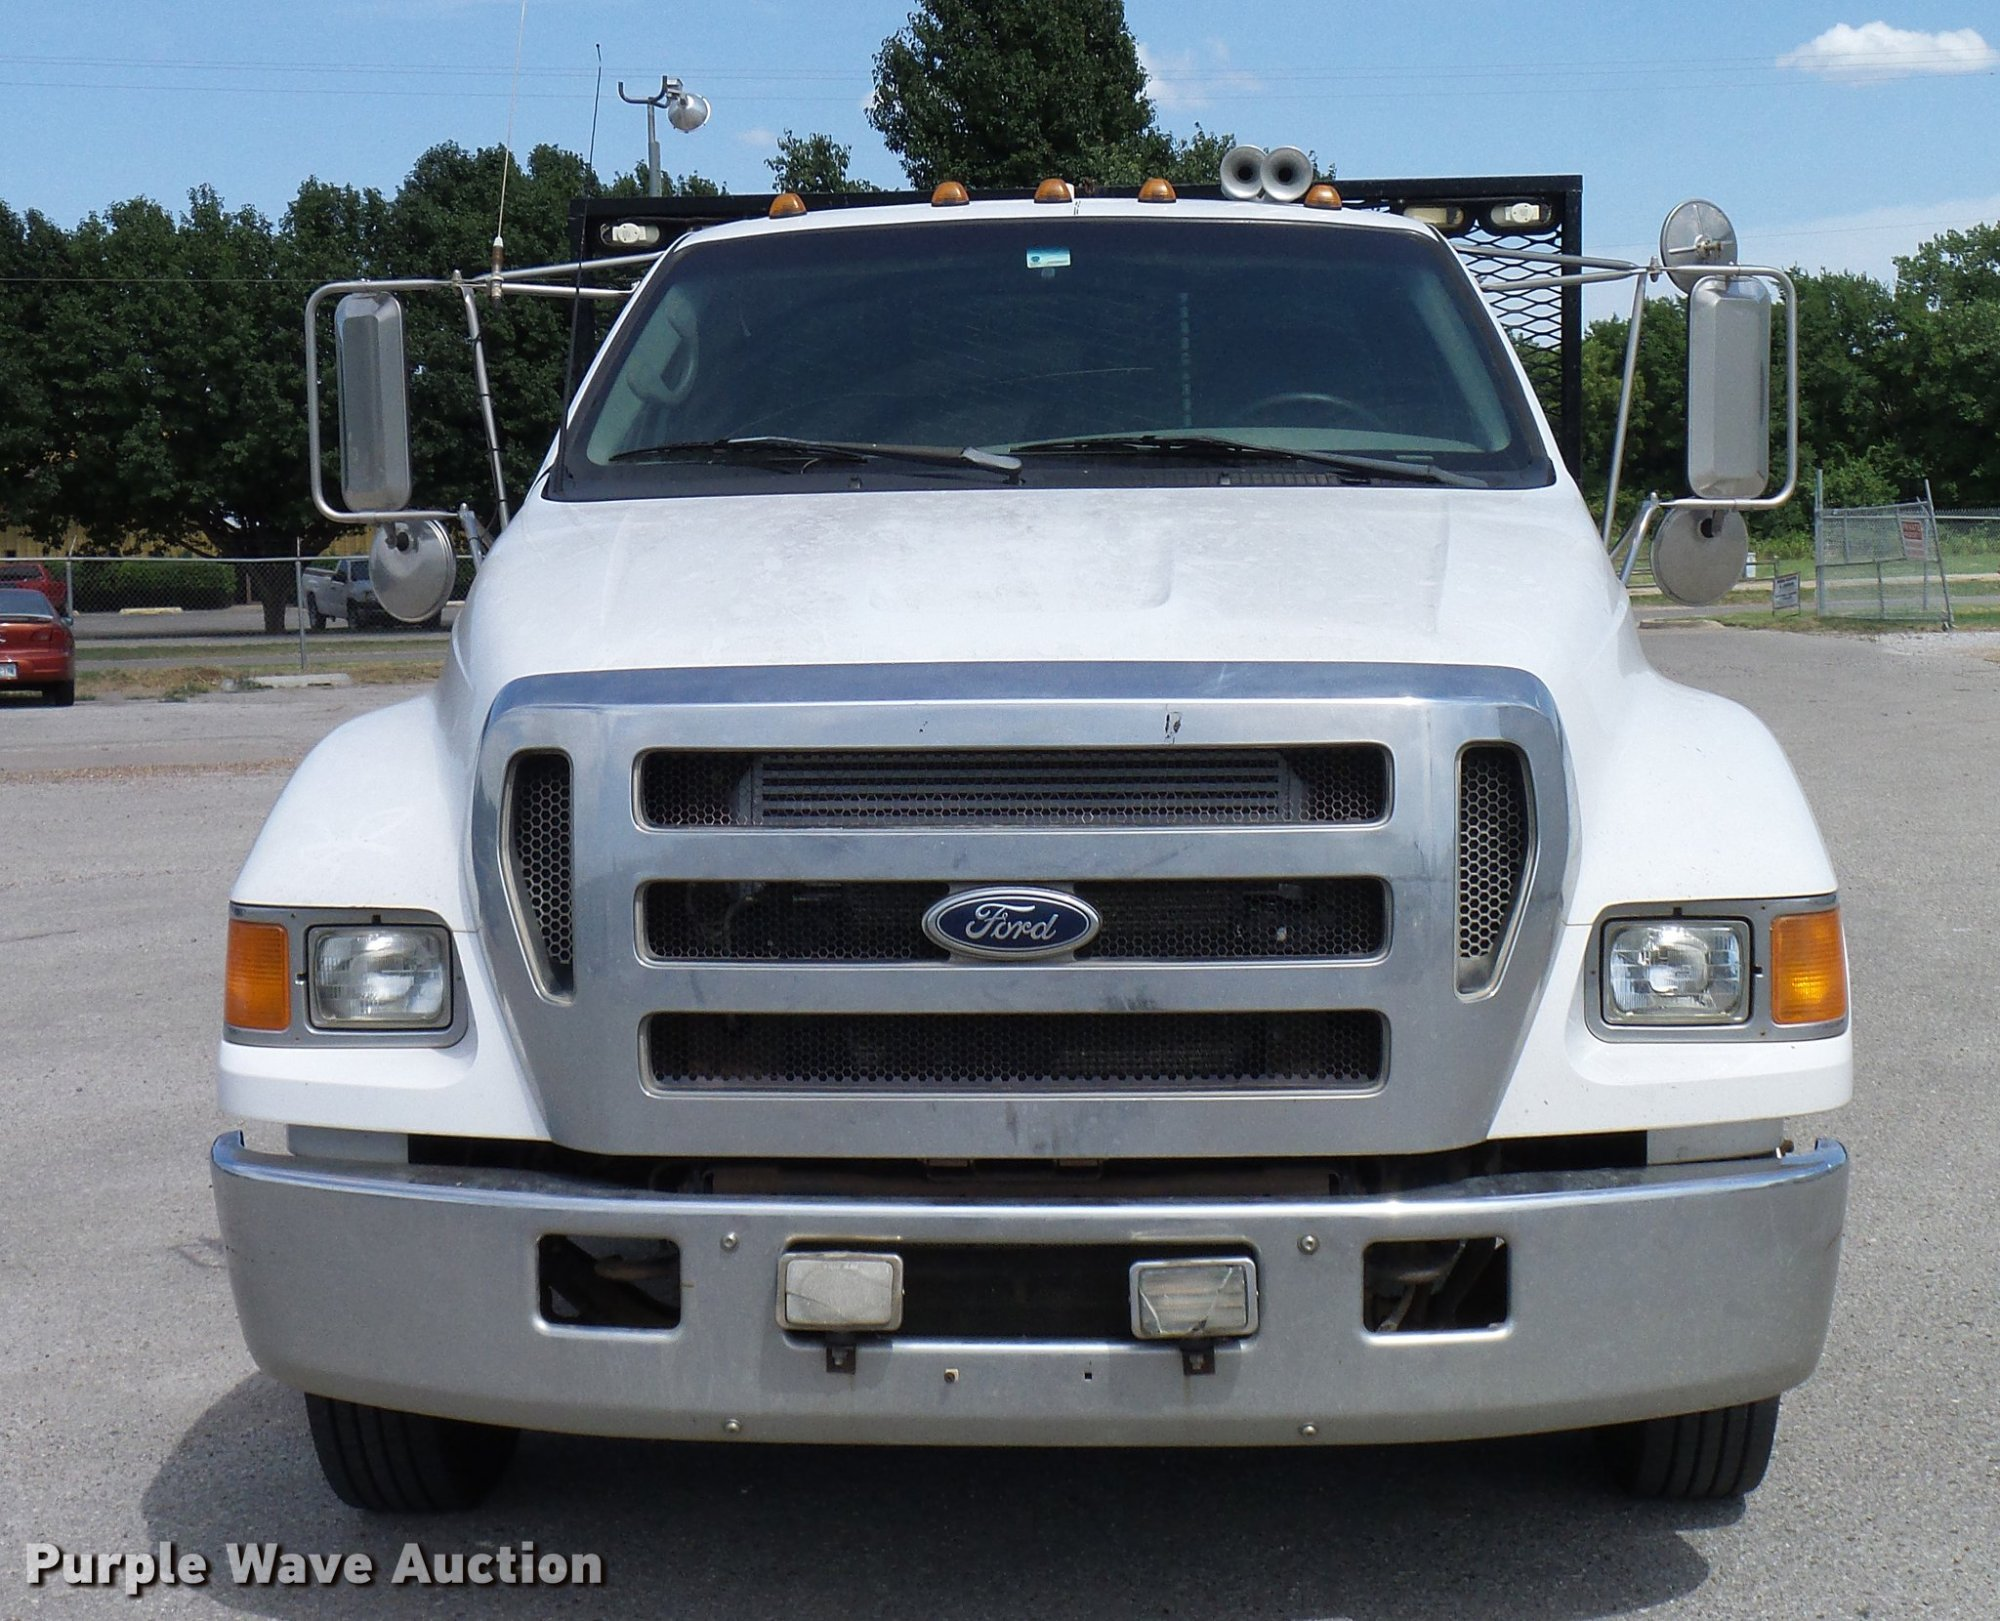 hight resolution of ford f650 super duty xlt flatbed truck full size in new window